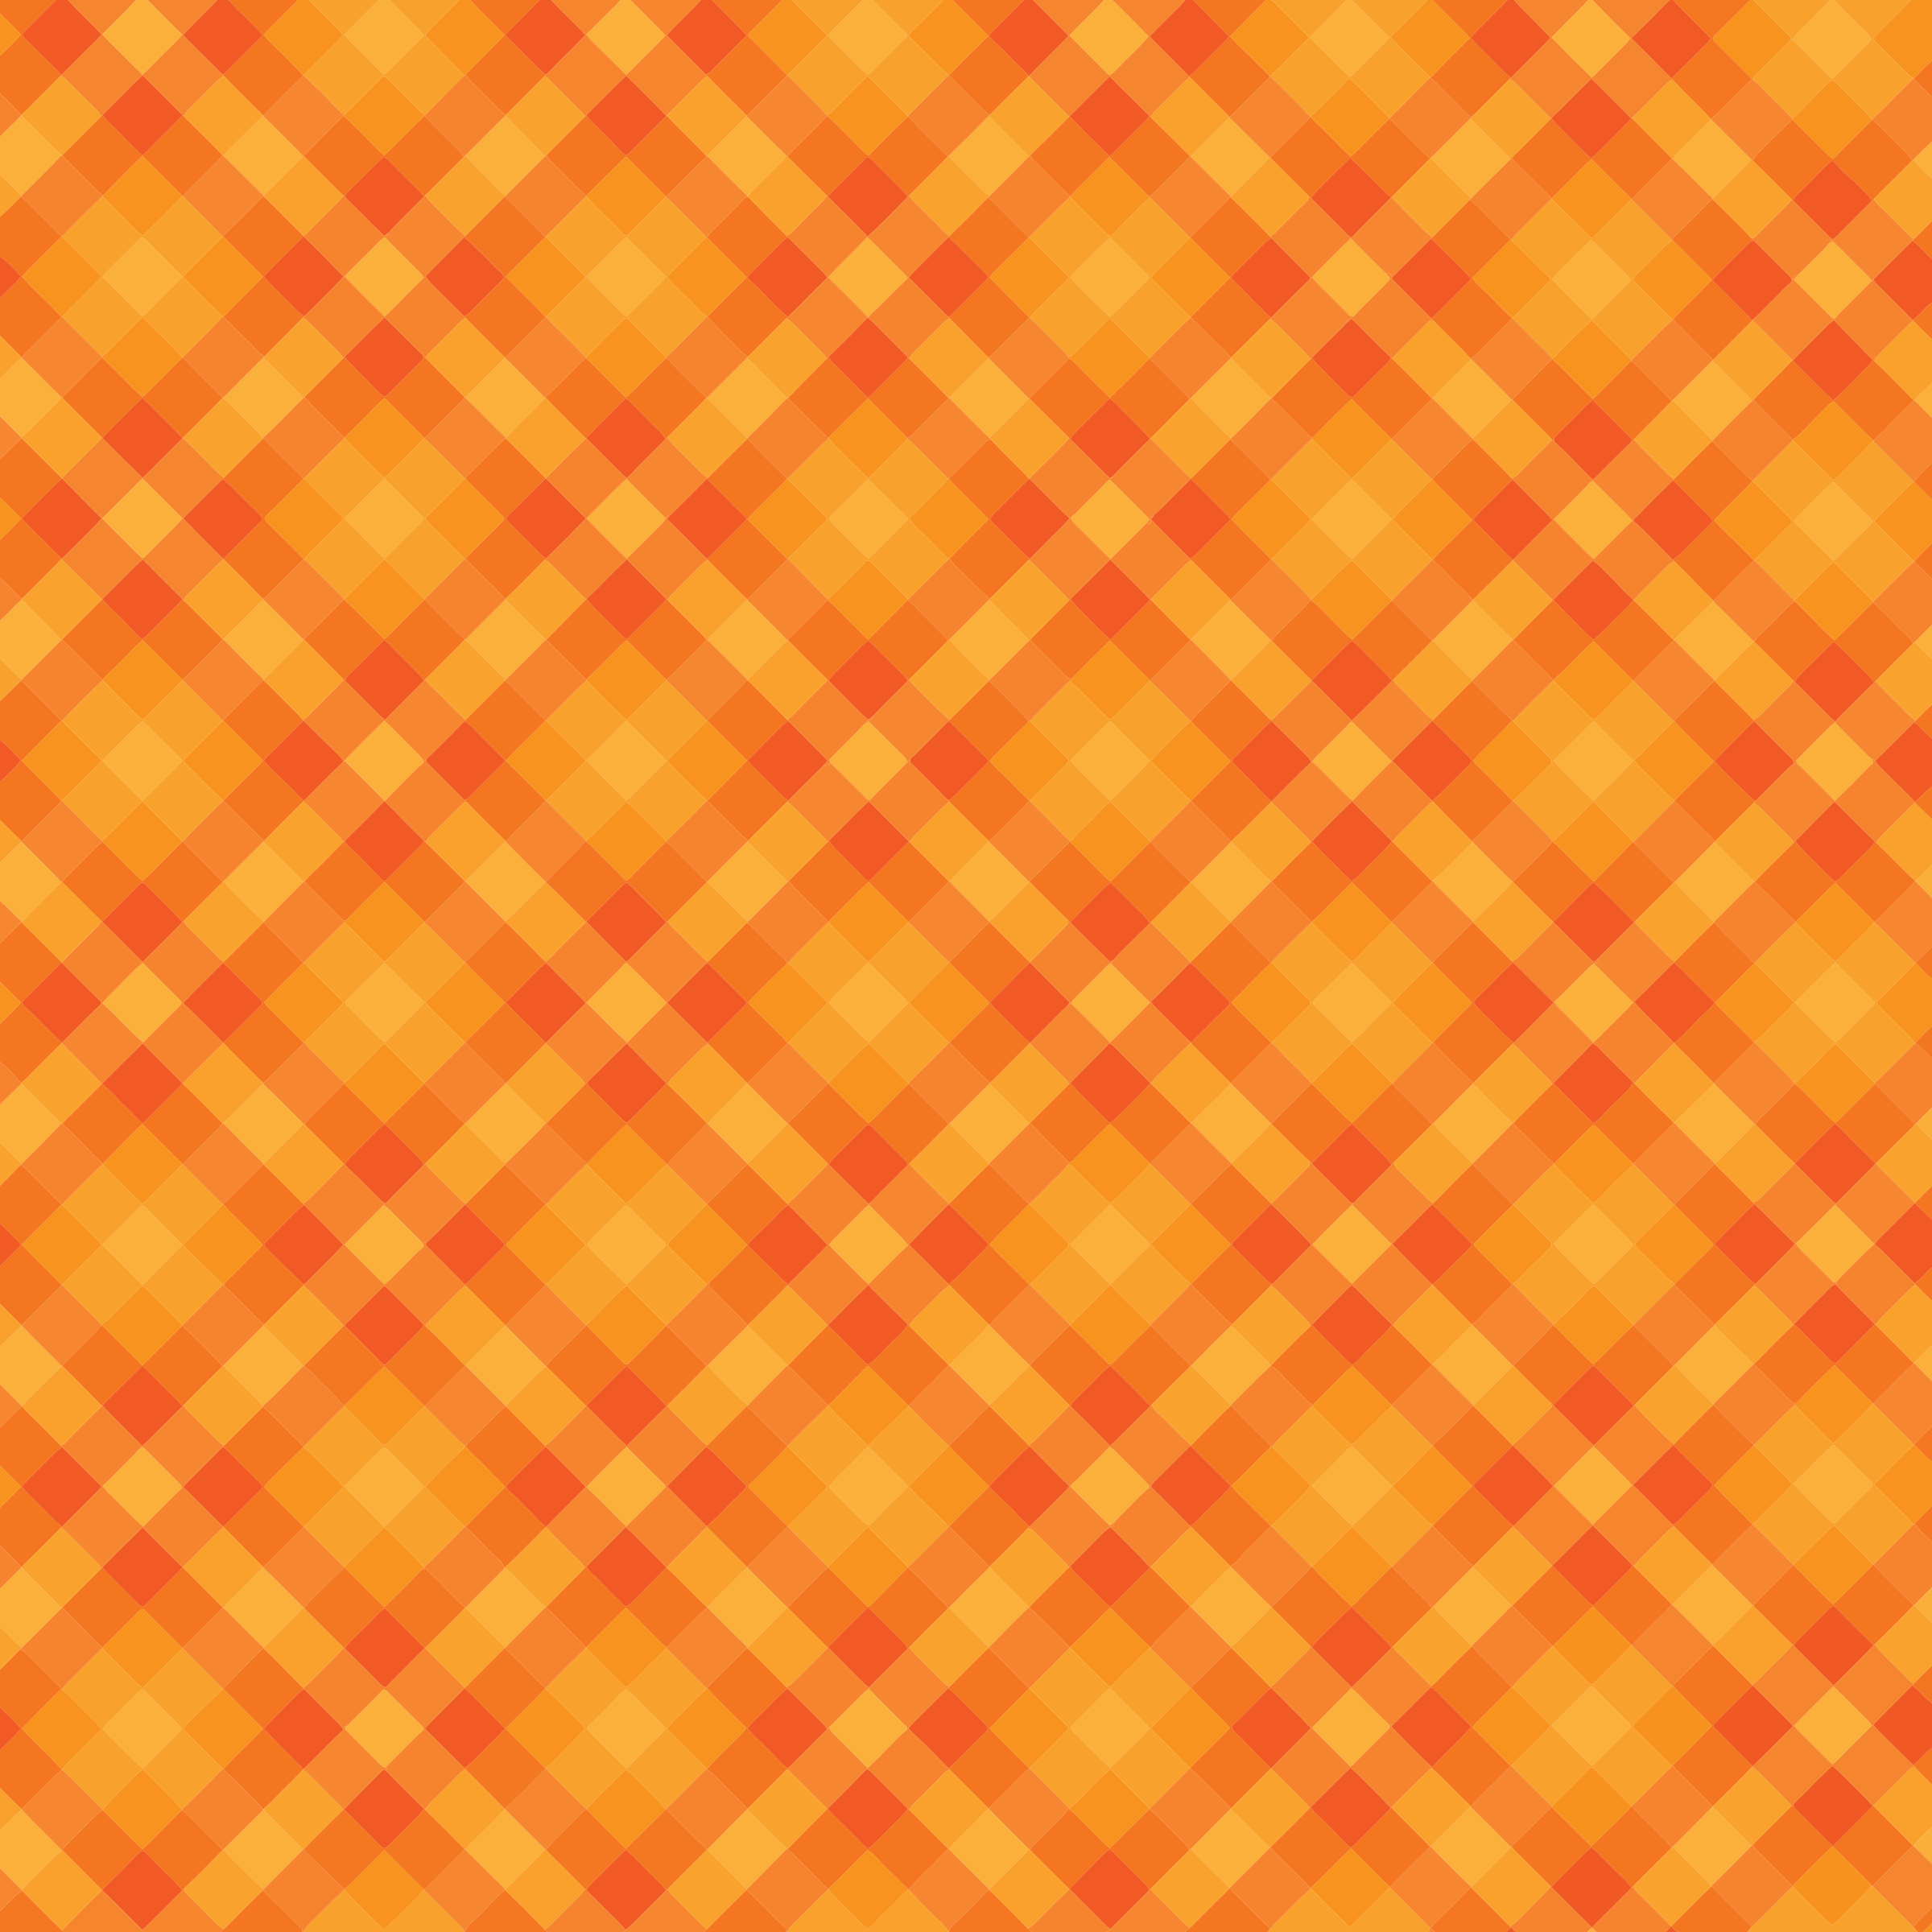 Orange Gingham Checkered Background by GDJ